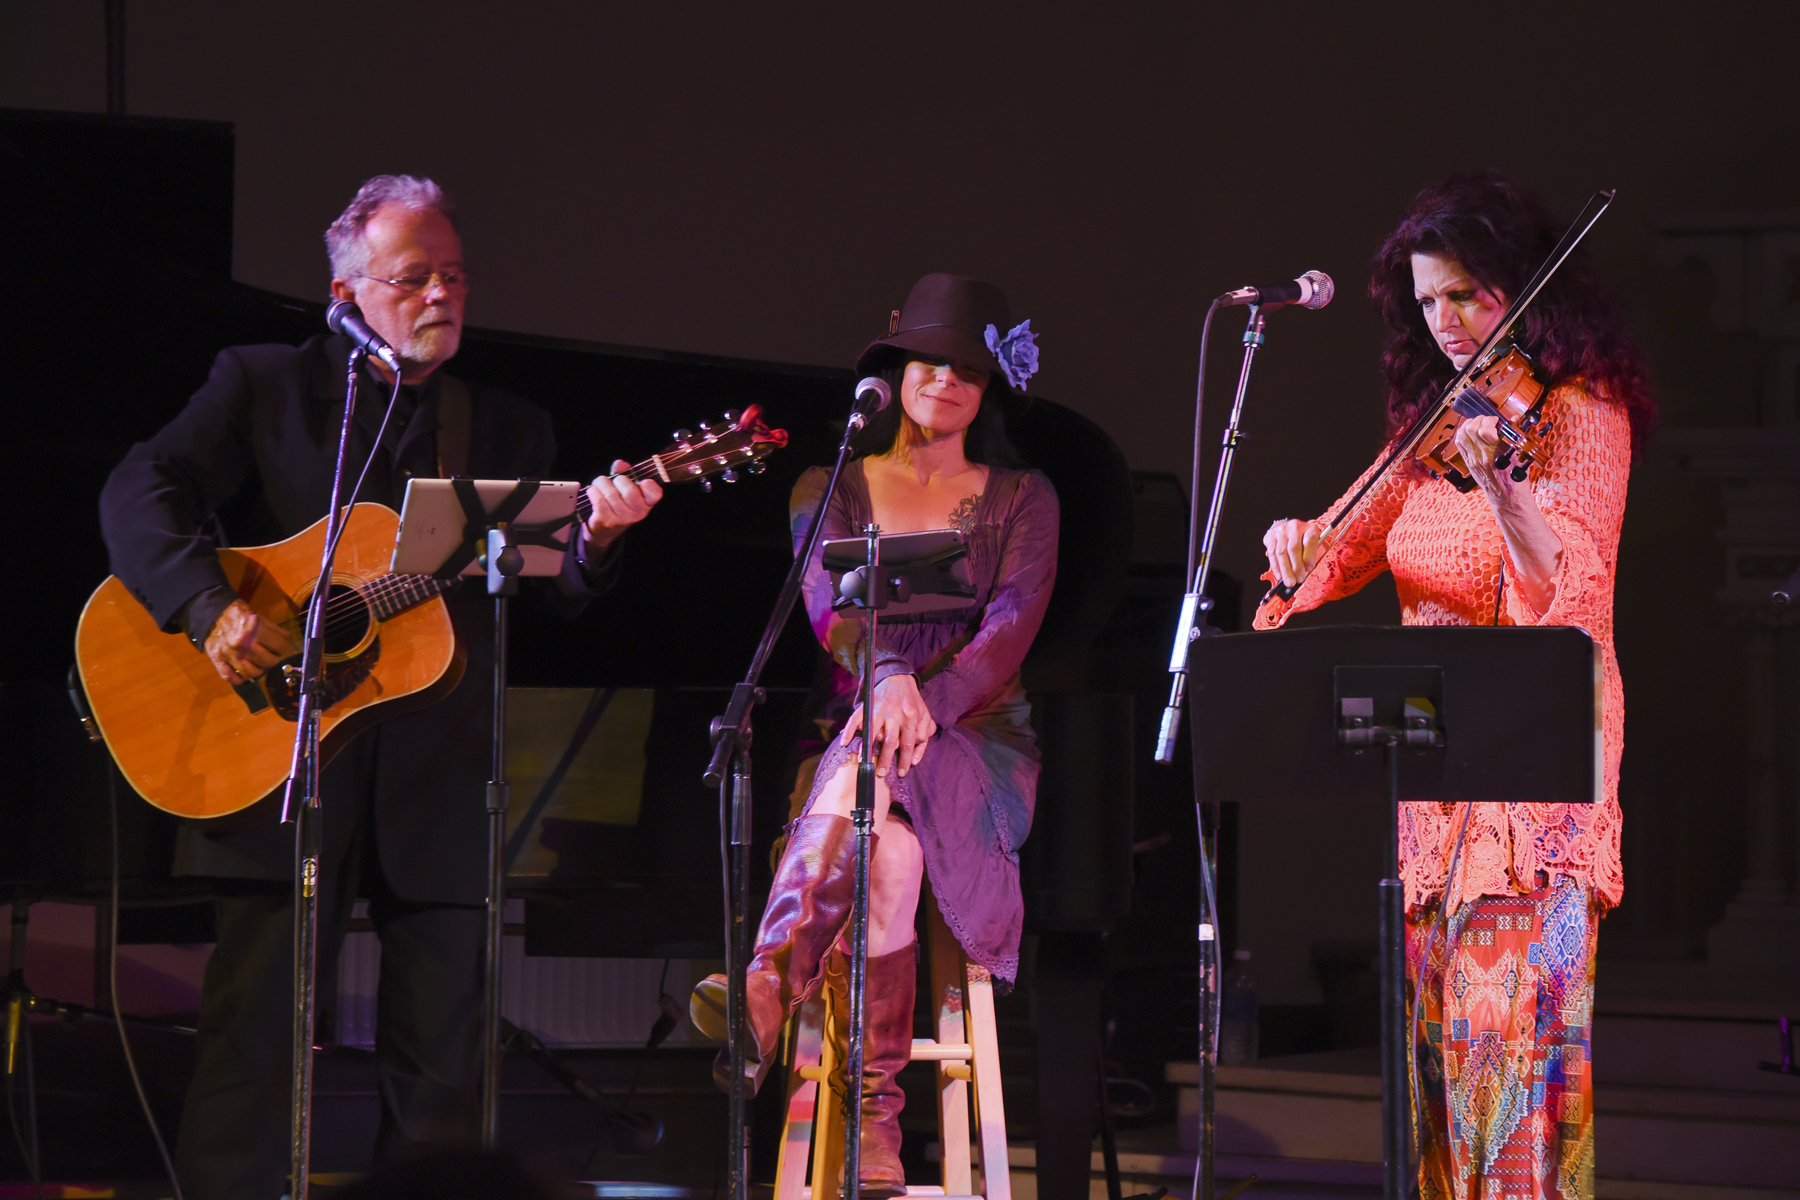 Gene LaFond, Amy Grillo and Scarlet Rivera / Sacred Heart Music Center / Duluth, Minnesota / May 23rd, 2015 / Photo by Michael K. Anderson